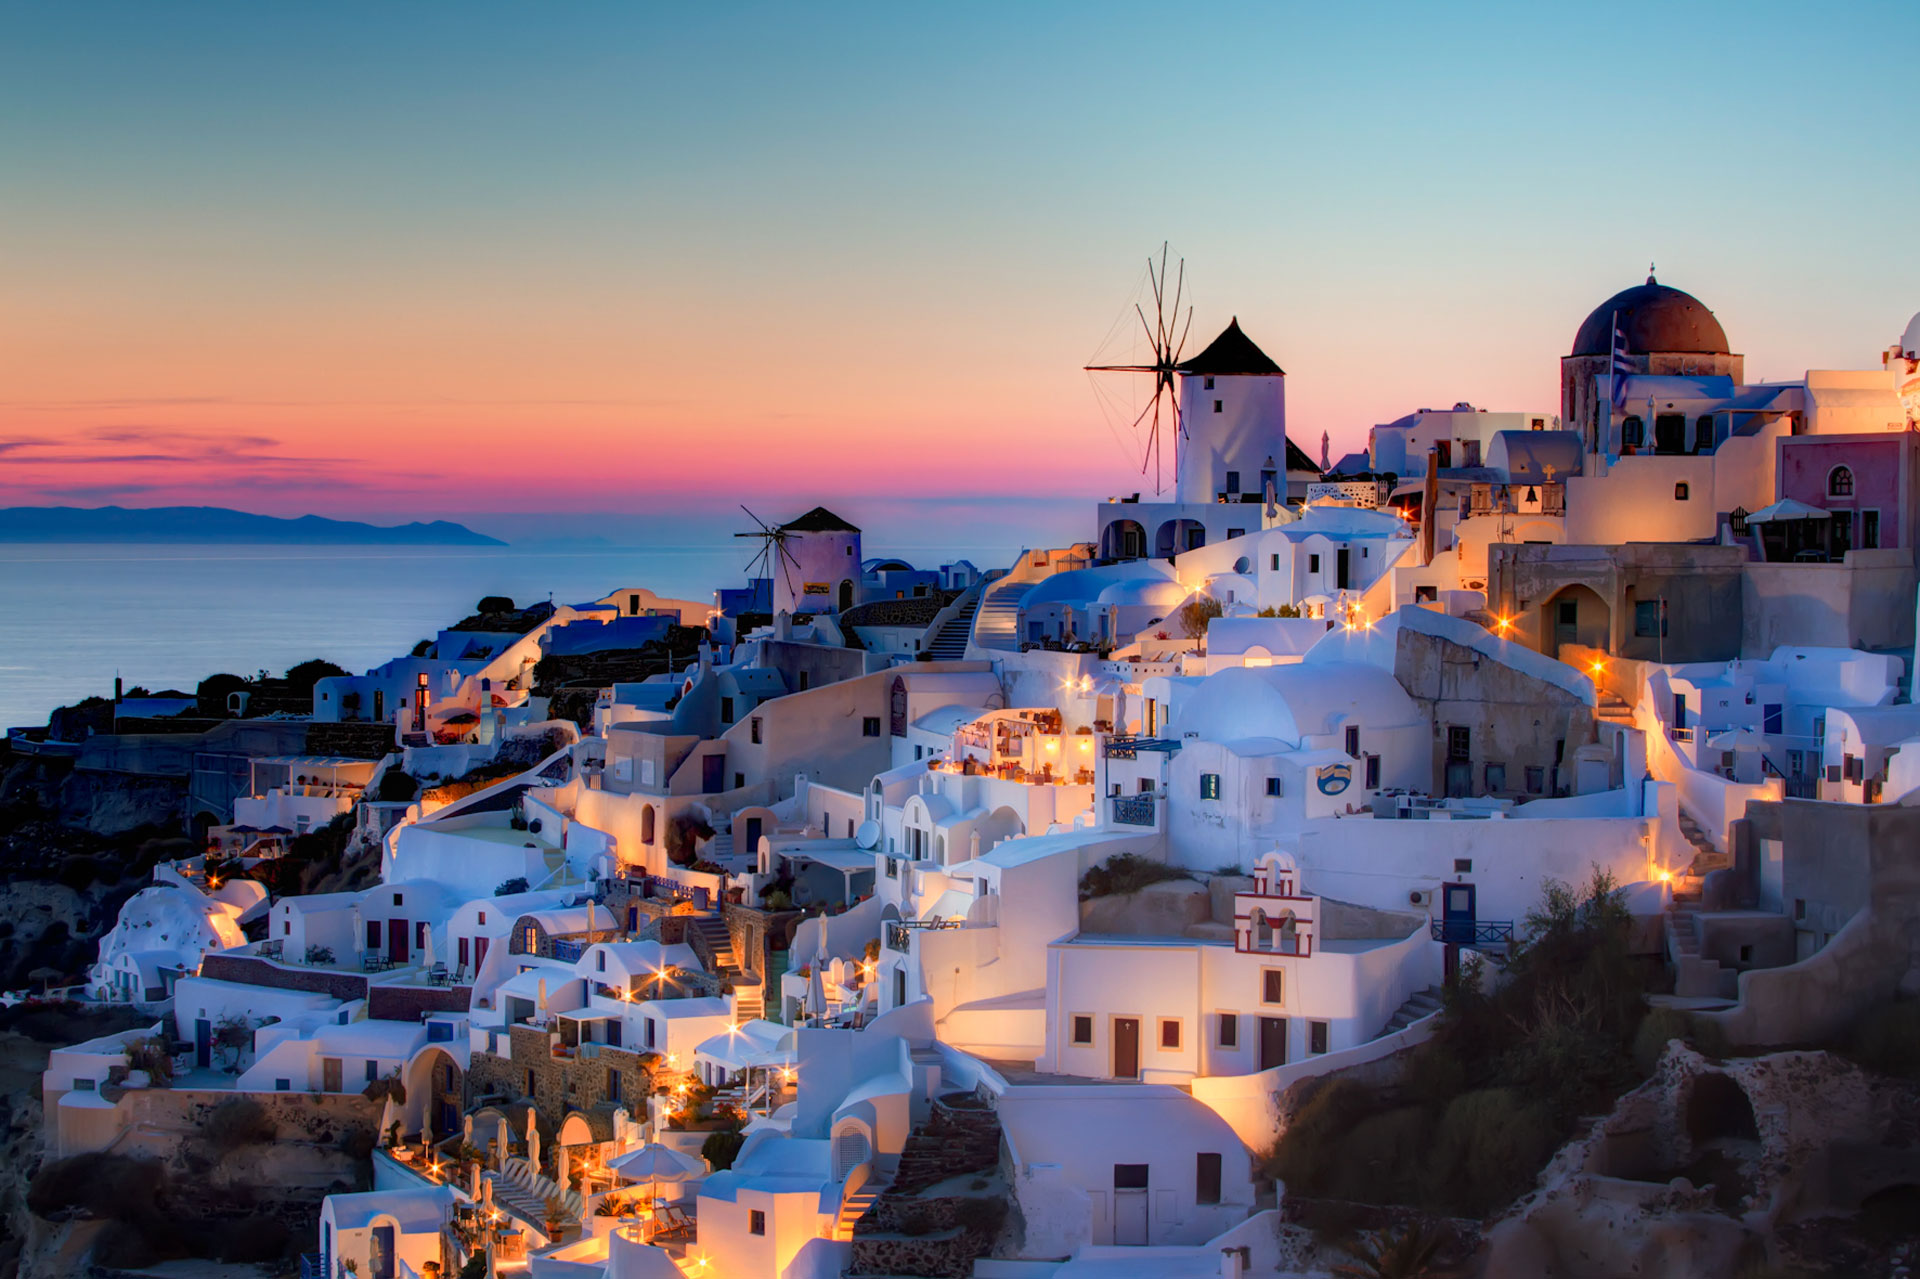 Sunset in Oia, Santorini - The sun setting over the picturesque town of Oia, Greece by Pedro Szekely